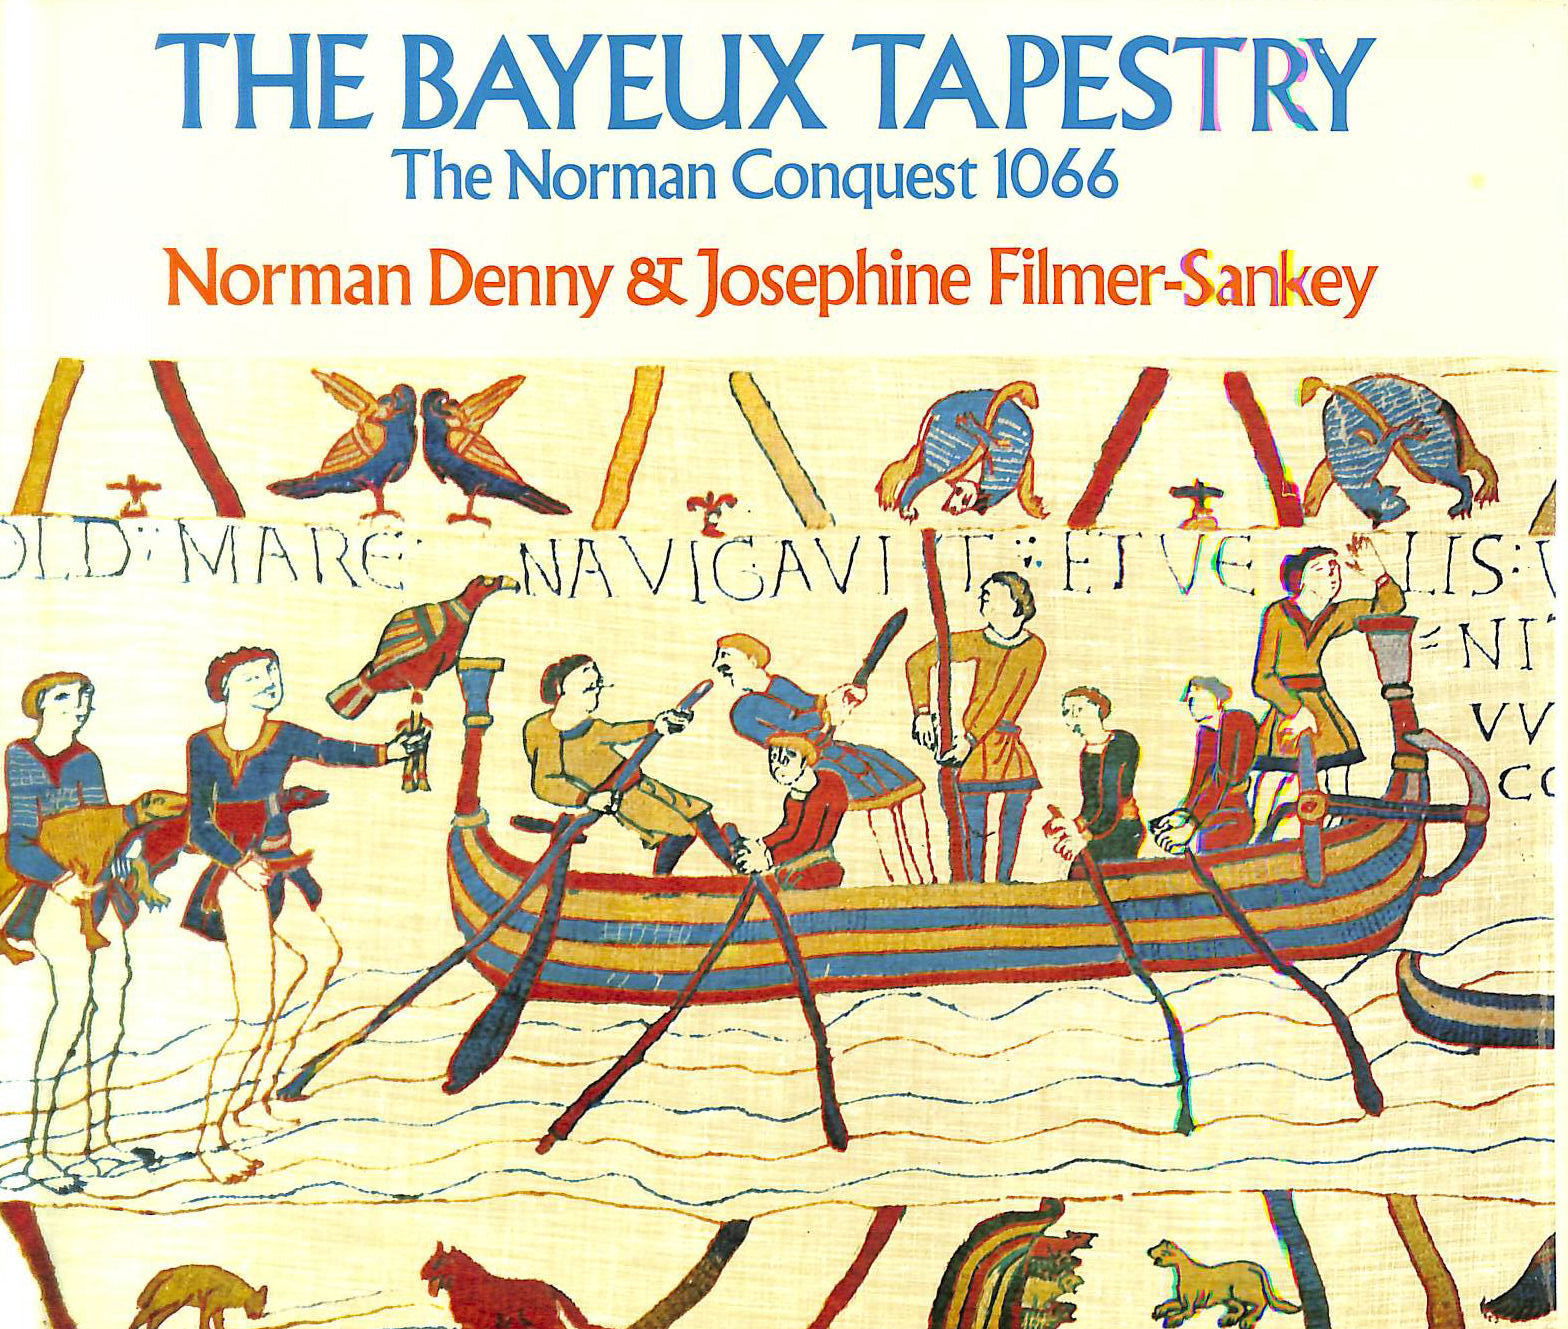 Image for The Bayeux tapestry - The Norman Conquest 1066